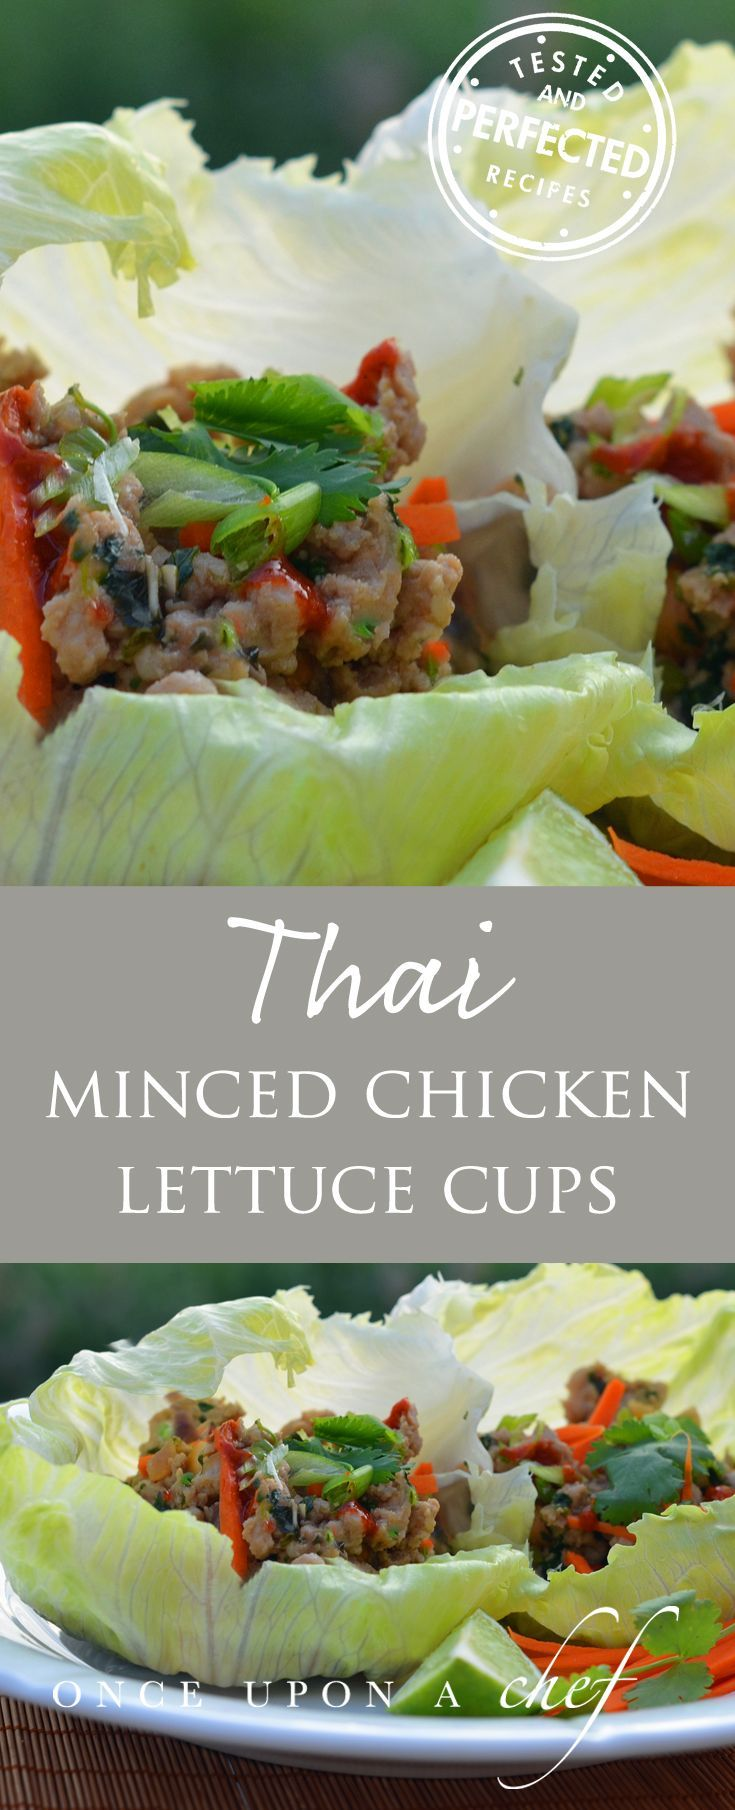 Thai Minced Chicken Lettuce Cups Really good with peanut sauce and marinated cucumbers, look for those pinned recipes also. Would cut back a little on the soy sauce just because it's not needed.